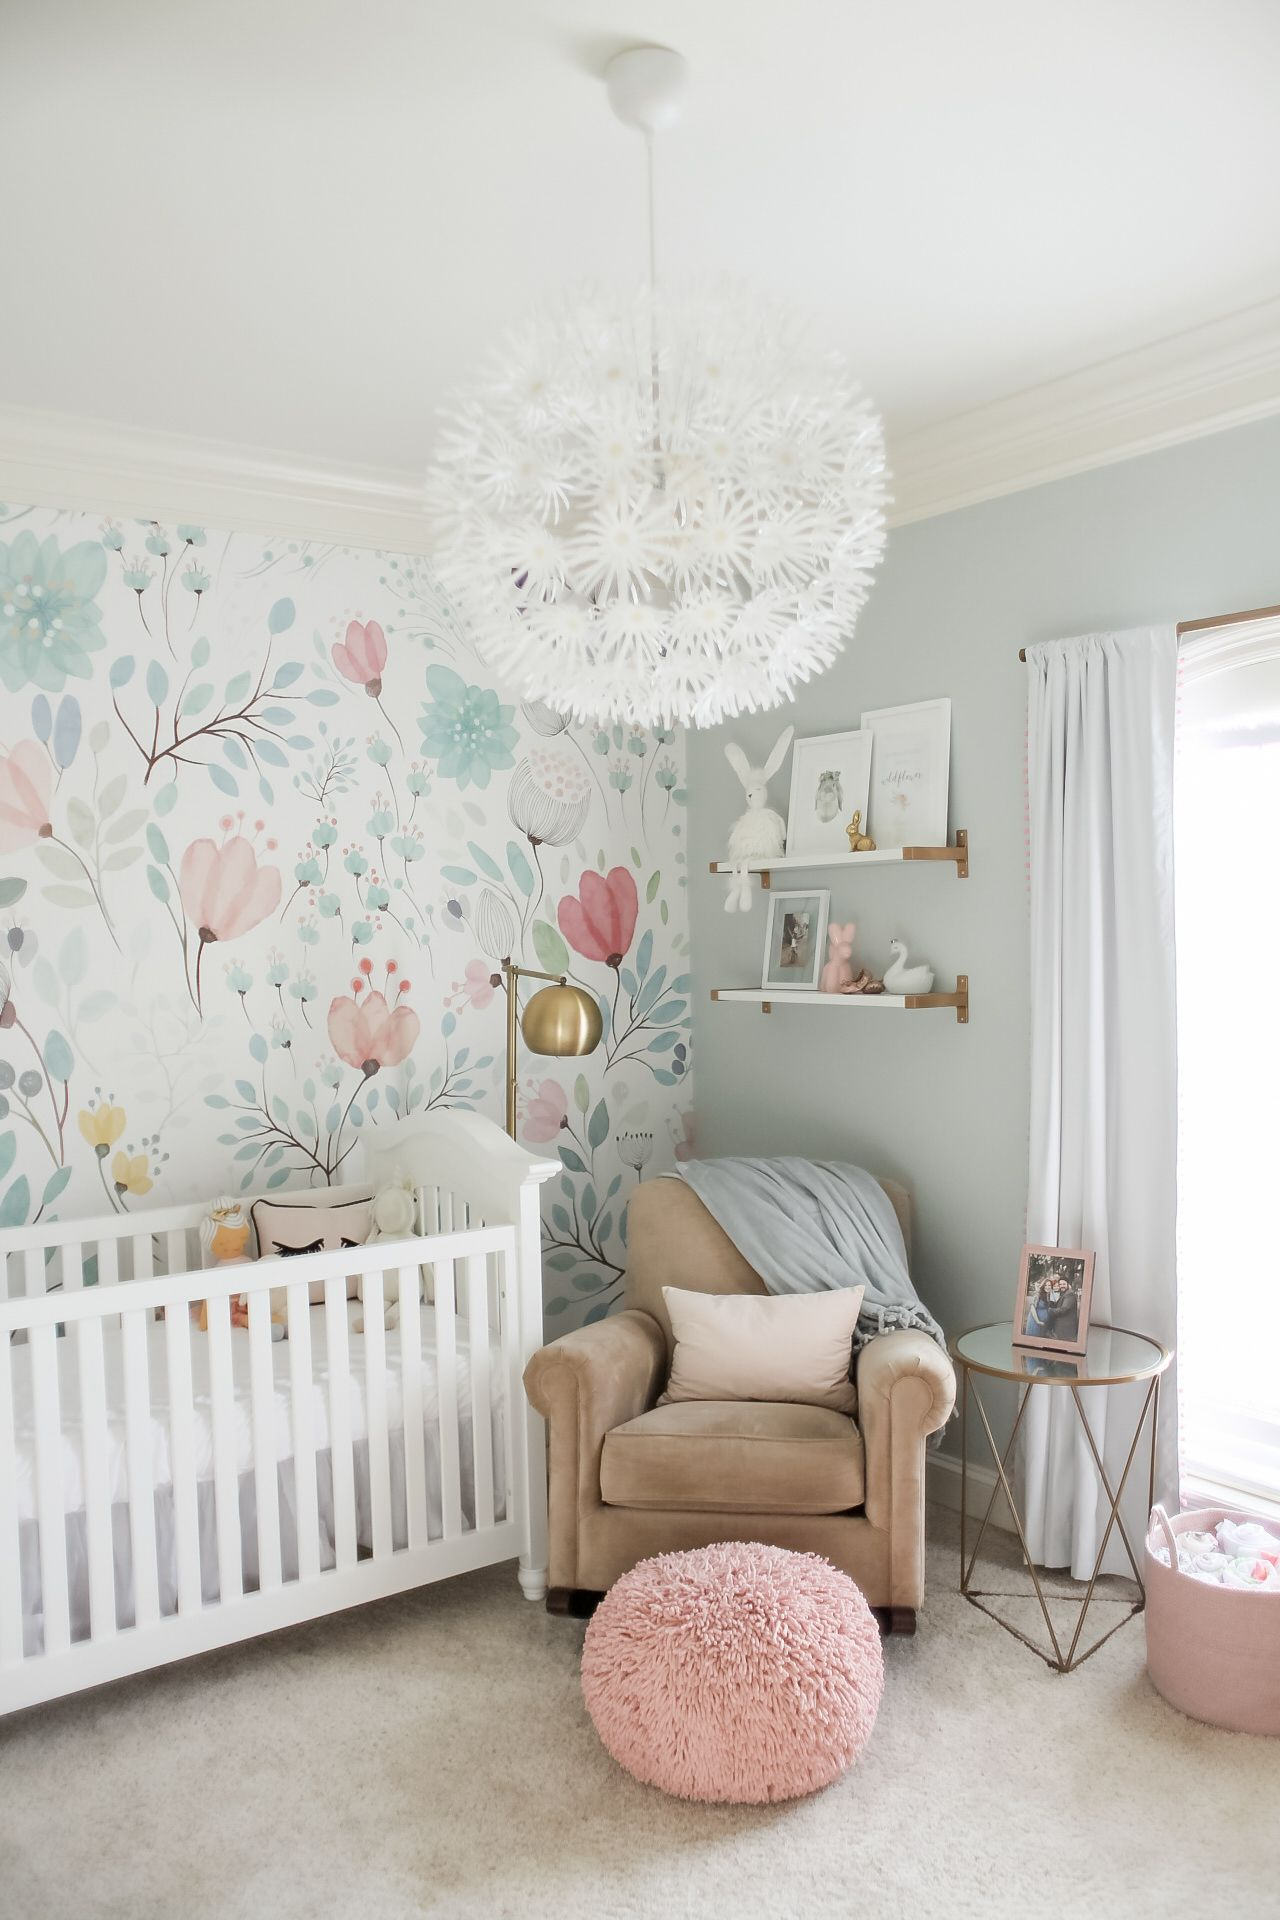 Bright And Whimsical Nursery For Colette Project Nursery Girl Nursery Room Baby Girl Nursery Room Nursery Baby Room